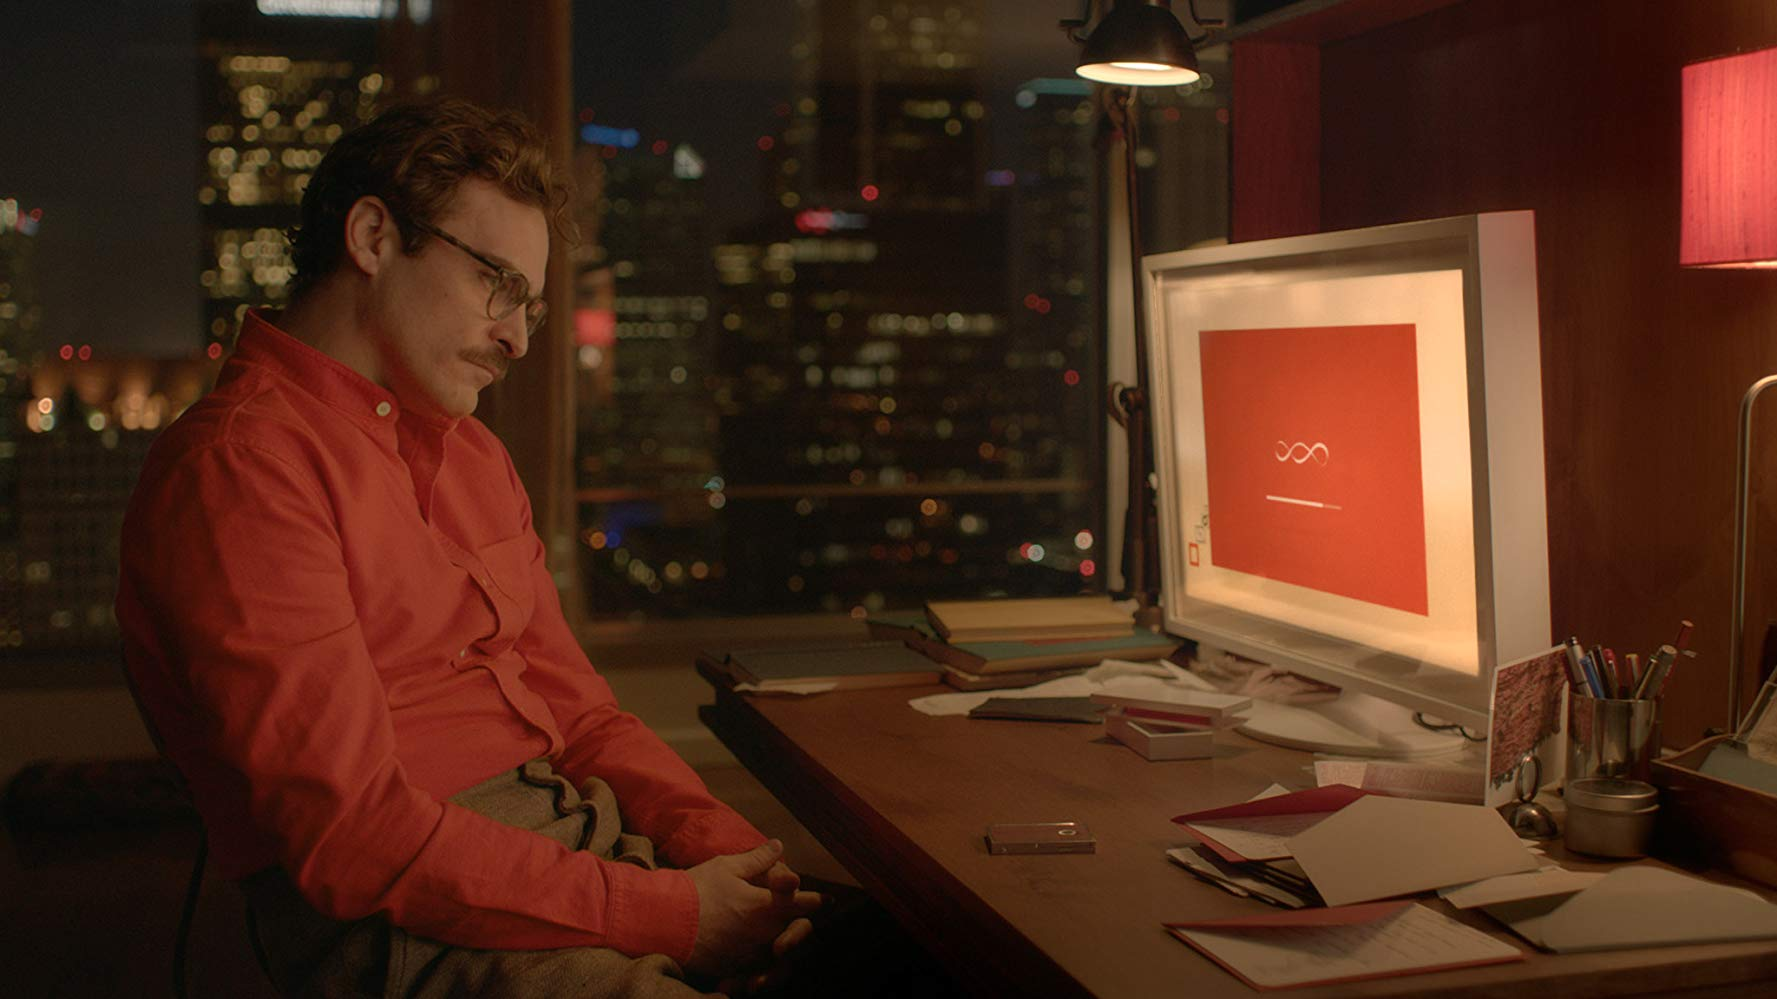 The American sci-fi romance 'Her' (2013). Written, directed and produced by Spike Jonze.